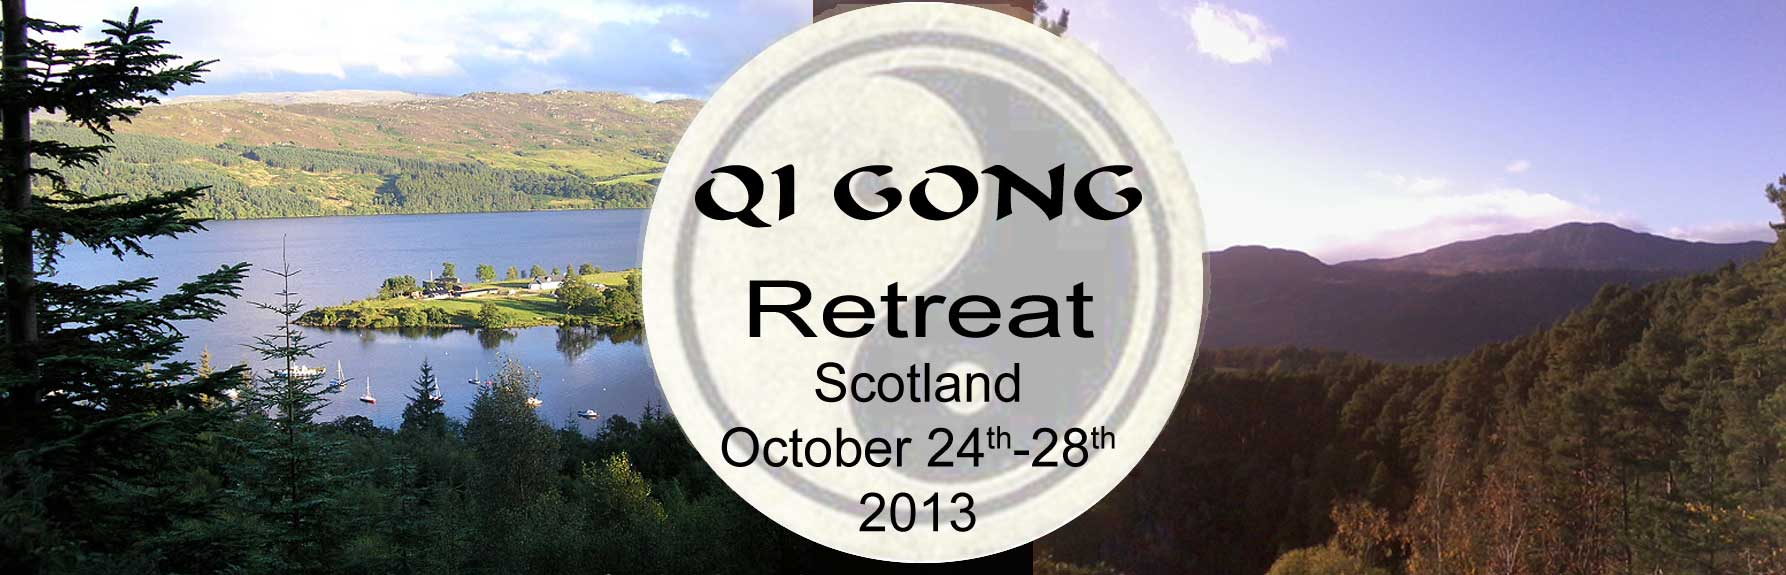 QI GONG RETREAT 24th - 28th October 2013